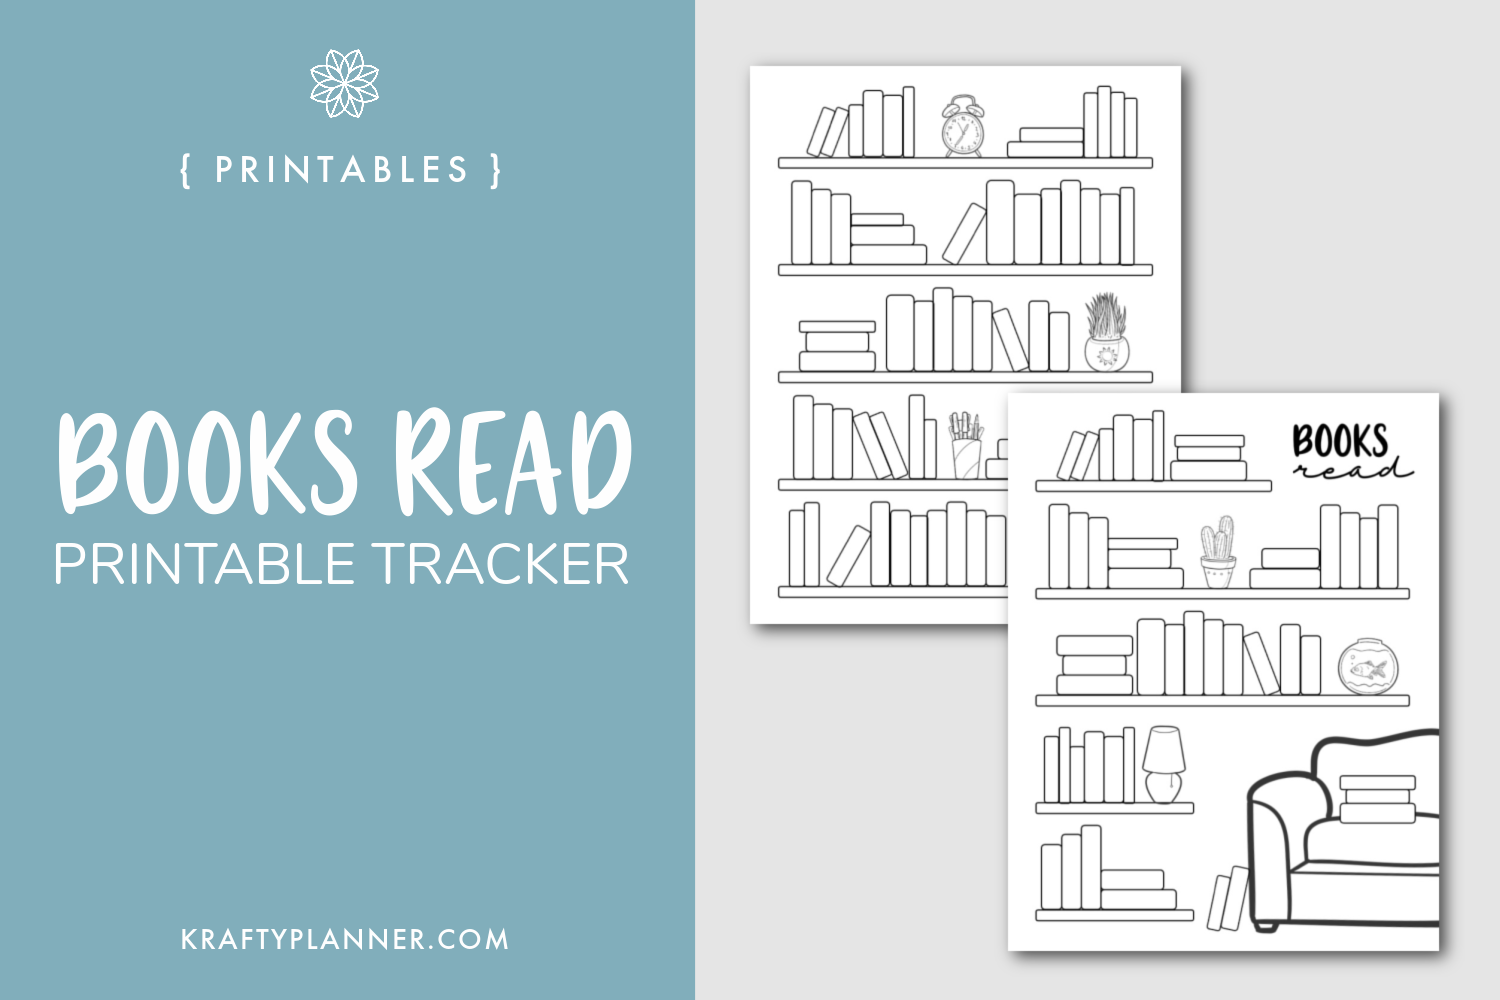 Books Read Printable Tracker Main Image.png